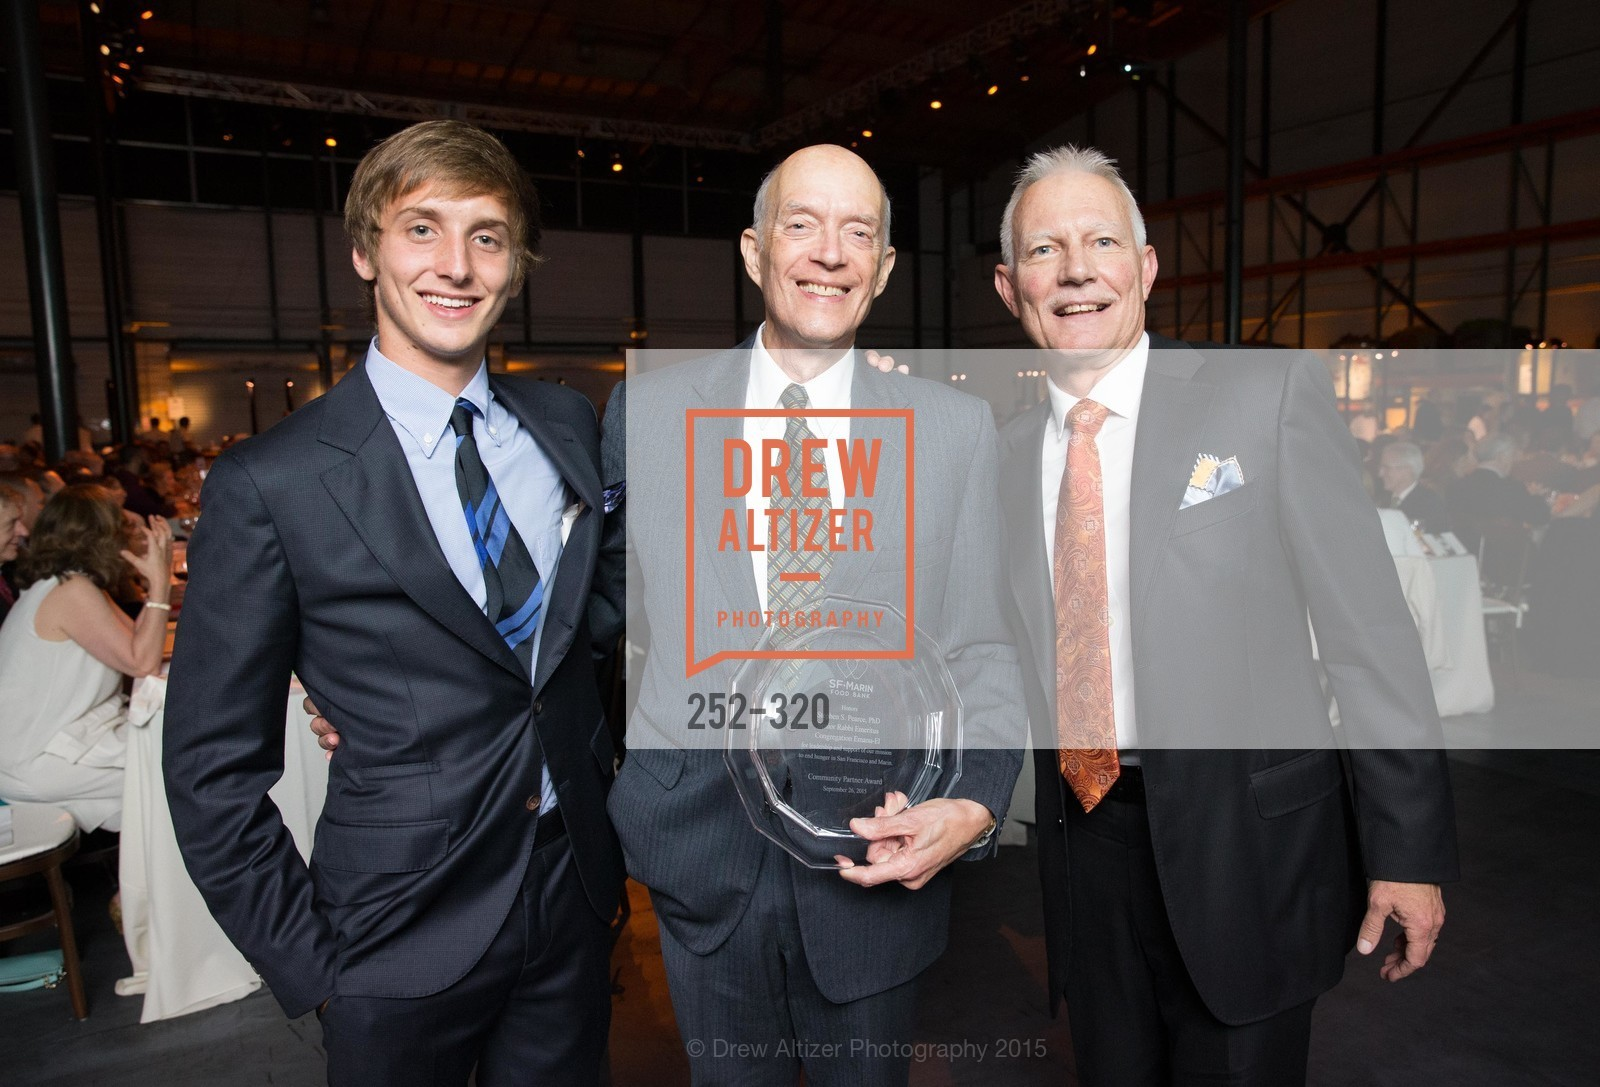 Wyeth Coulter, Stephen Pearce, Paul Ash, SF - Marin Food Bank Presents ONE BIG TABLE, SF- Marin Food Bank. 900 Pennsylvania Ave, September 26th, 2015,Drew Altizer, Drew Altizer Photography, full-service agency, private events, San Francisco photographer, photographer california